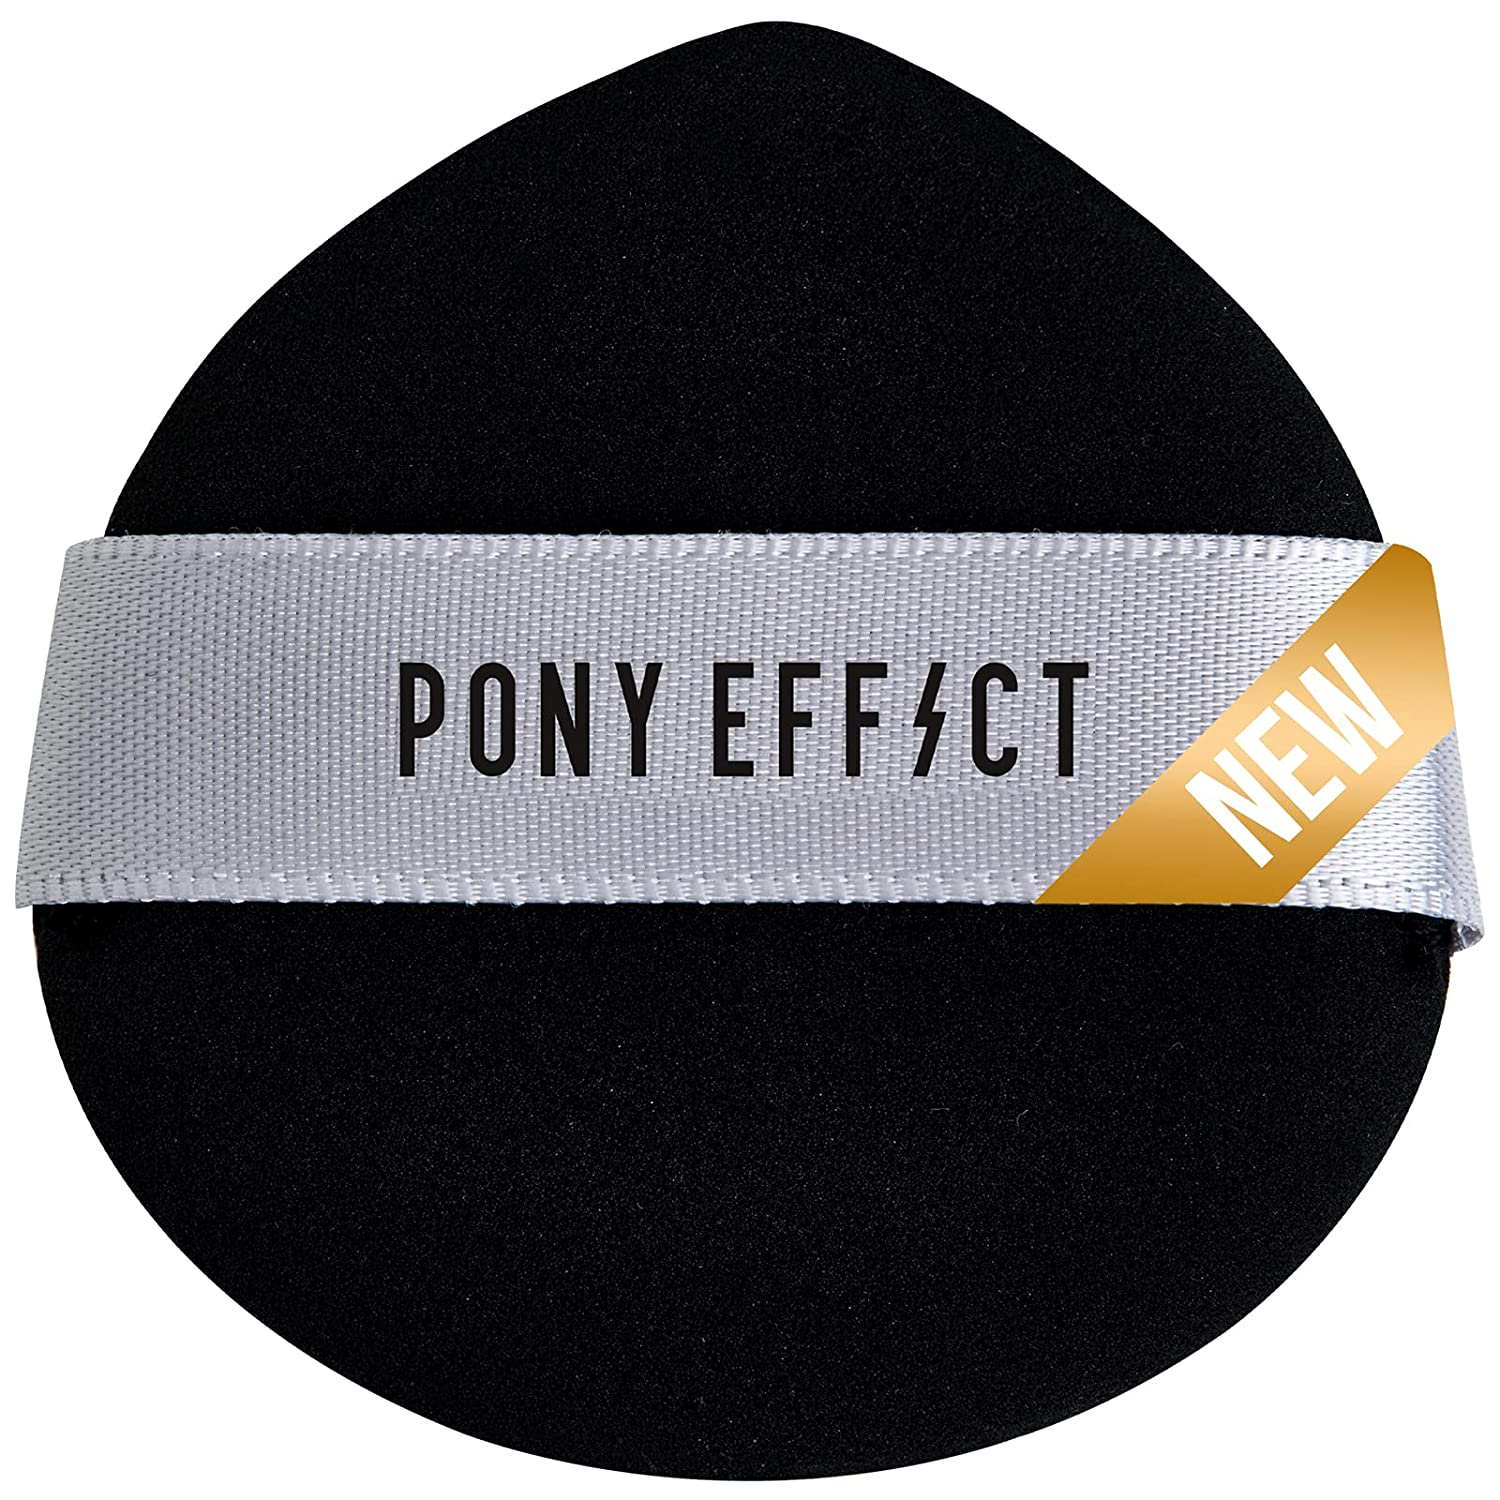 PONY EFFECT Airy Fit Dough Puff | Cushion Puff for Smooth, Non-cakey Skin | Durable and Reusable | K-beauty